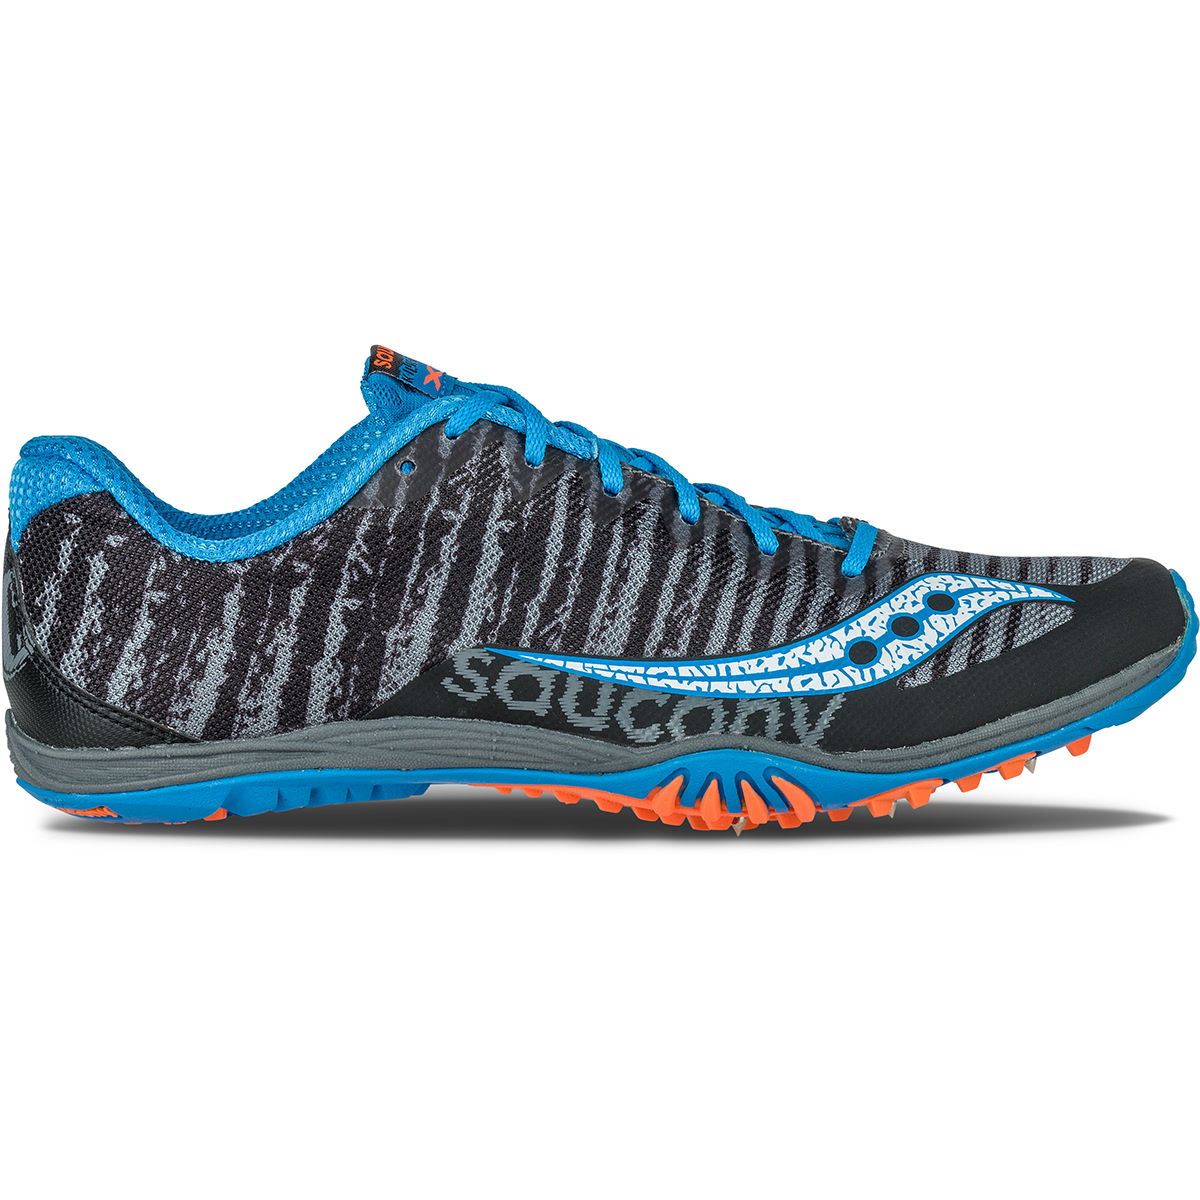 Chaussures de cross-country Saucony Kilkenny (AH16) - 4 UK Black/Carolina Chaussures de running à pointes